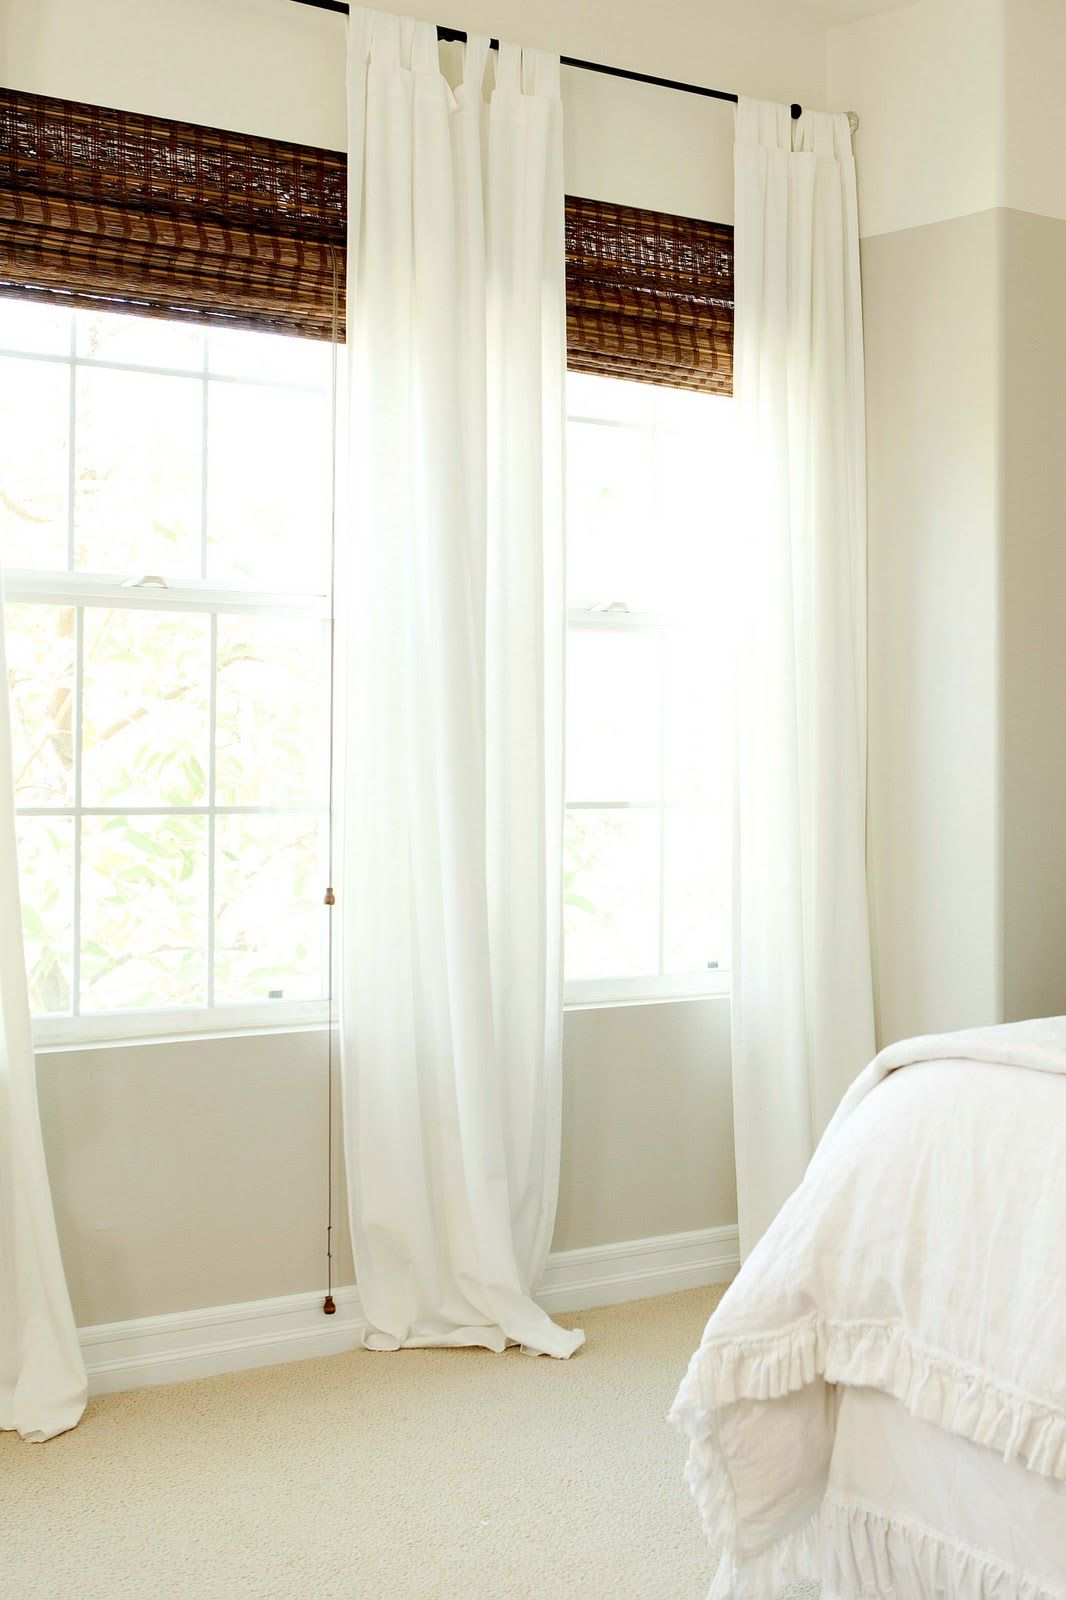 Love white curtains with these blinds b e d r o o m for Bamboo curtains in bedroom